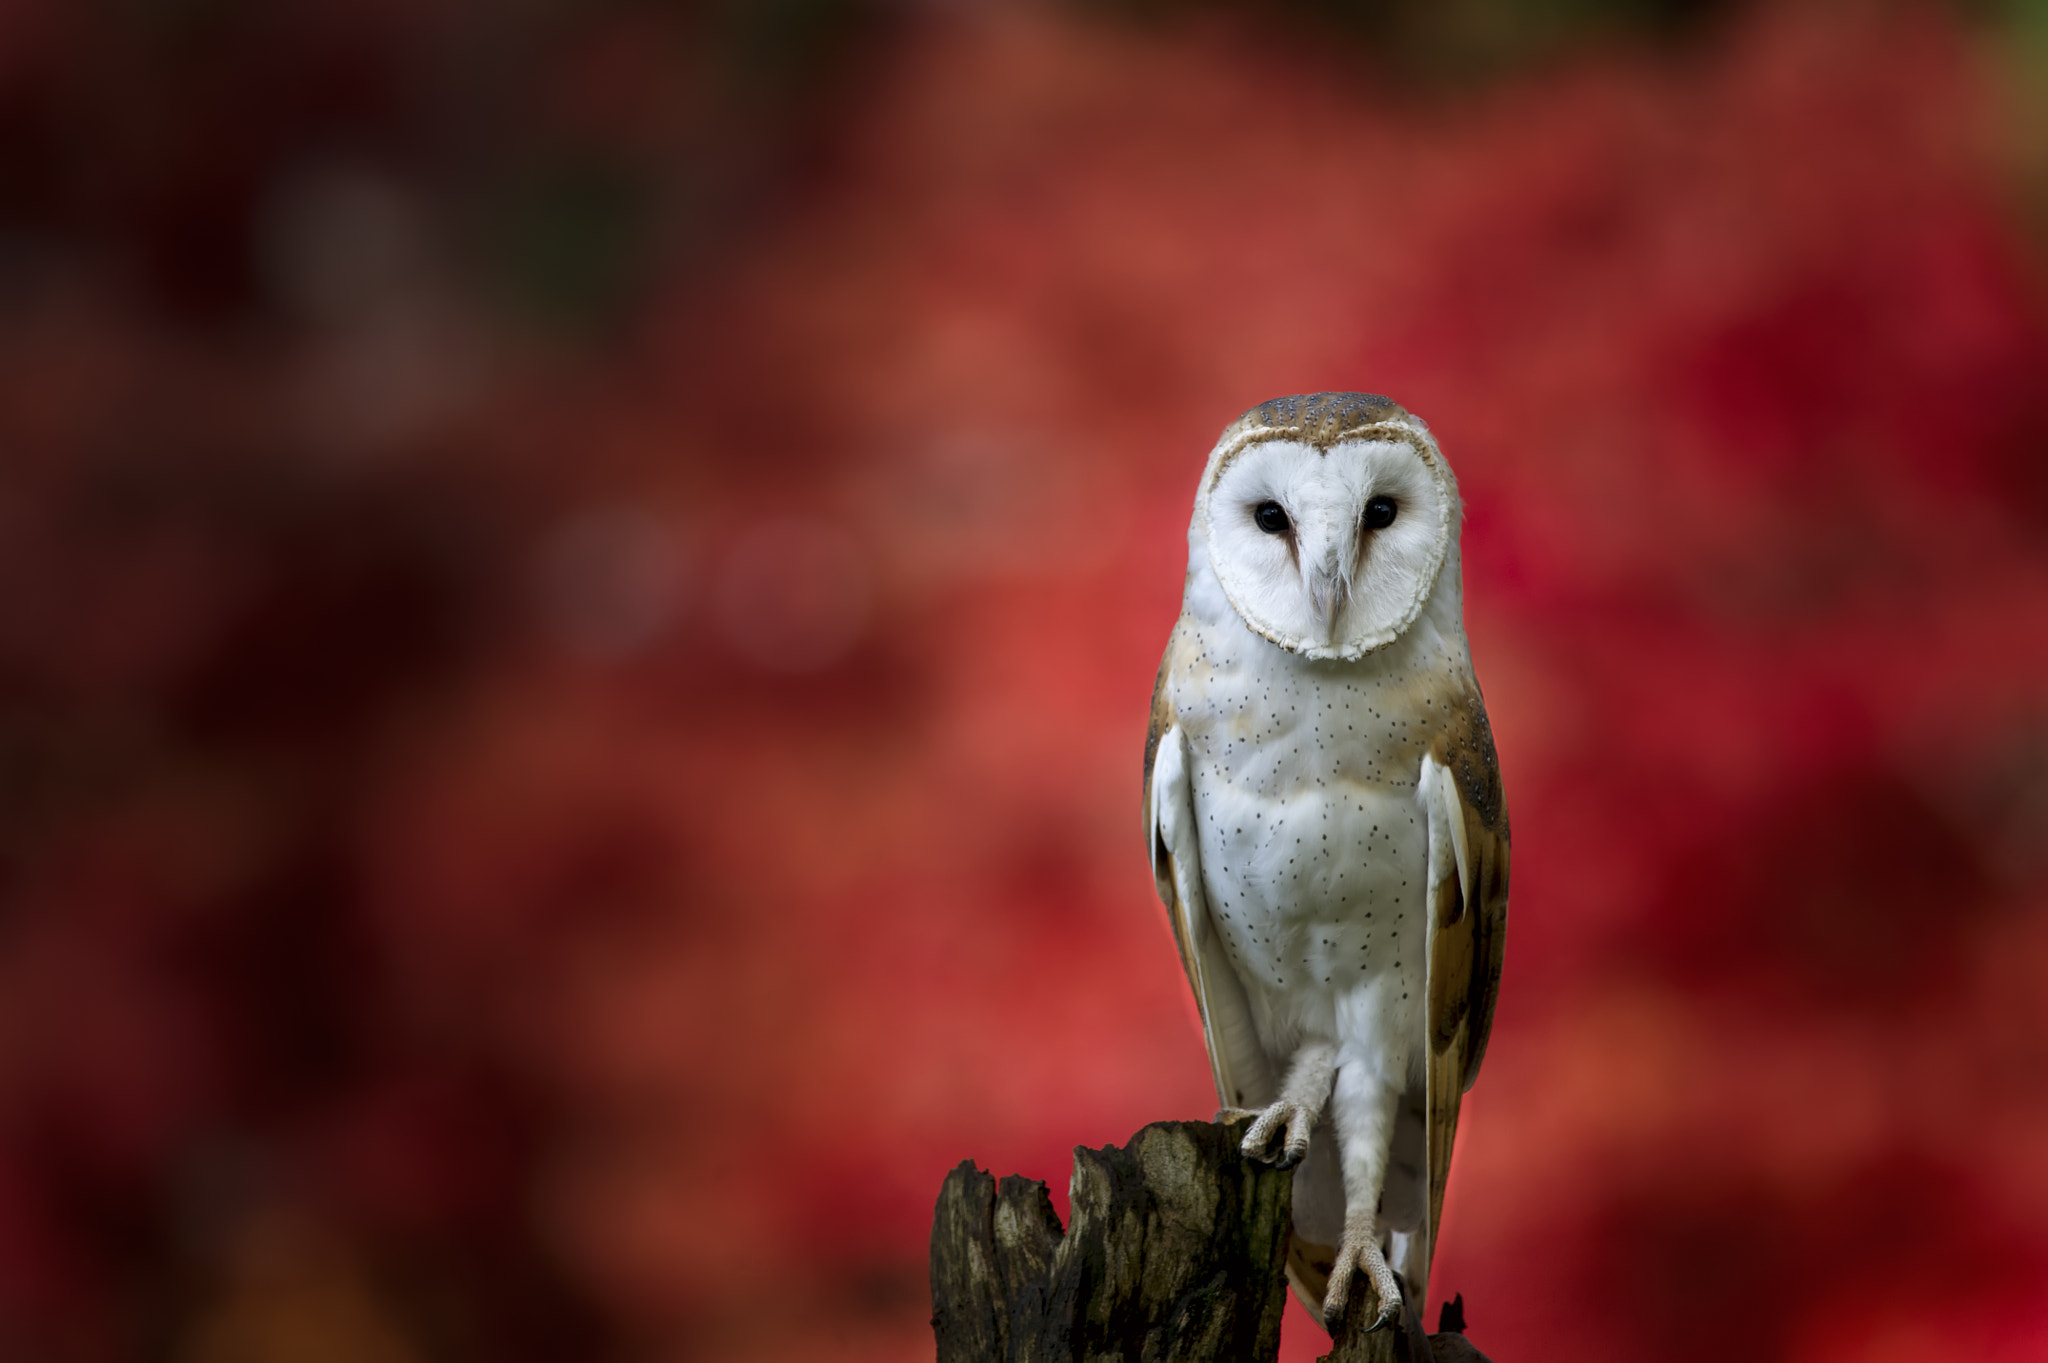 Photograph The Messenger by Alessandro Cancian on 500px